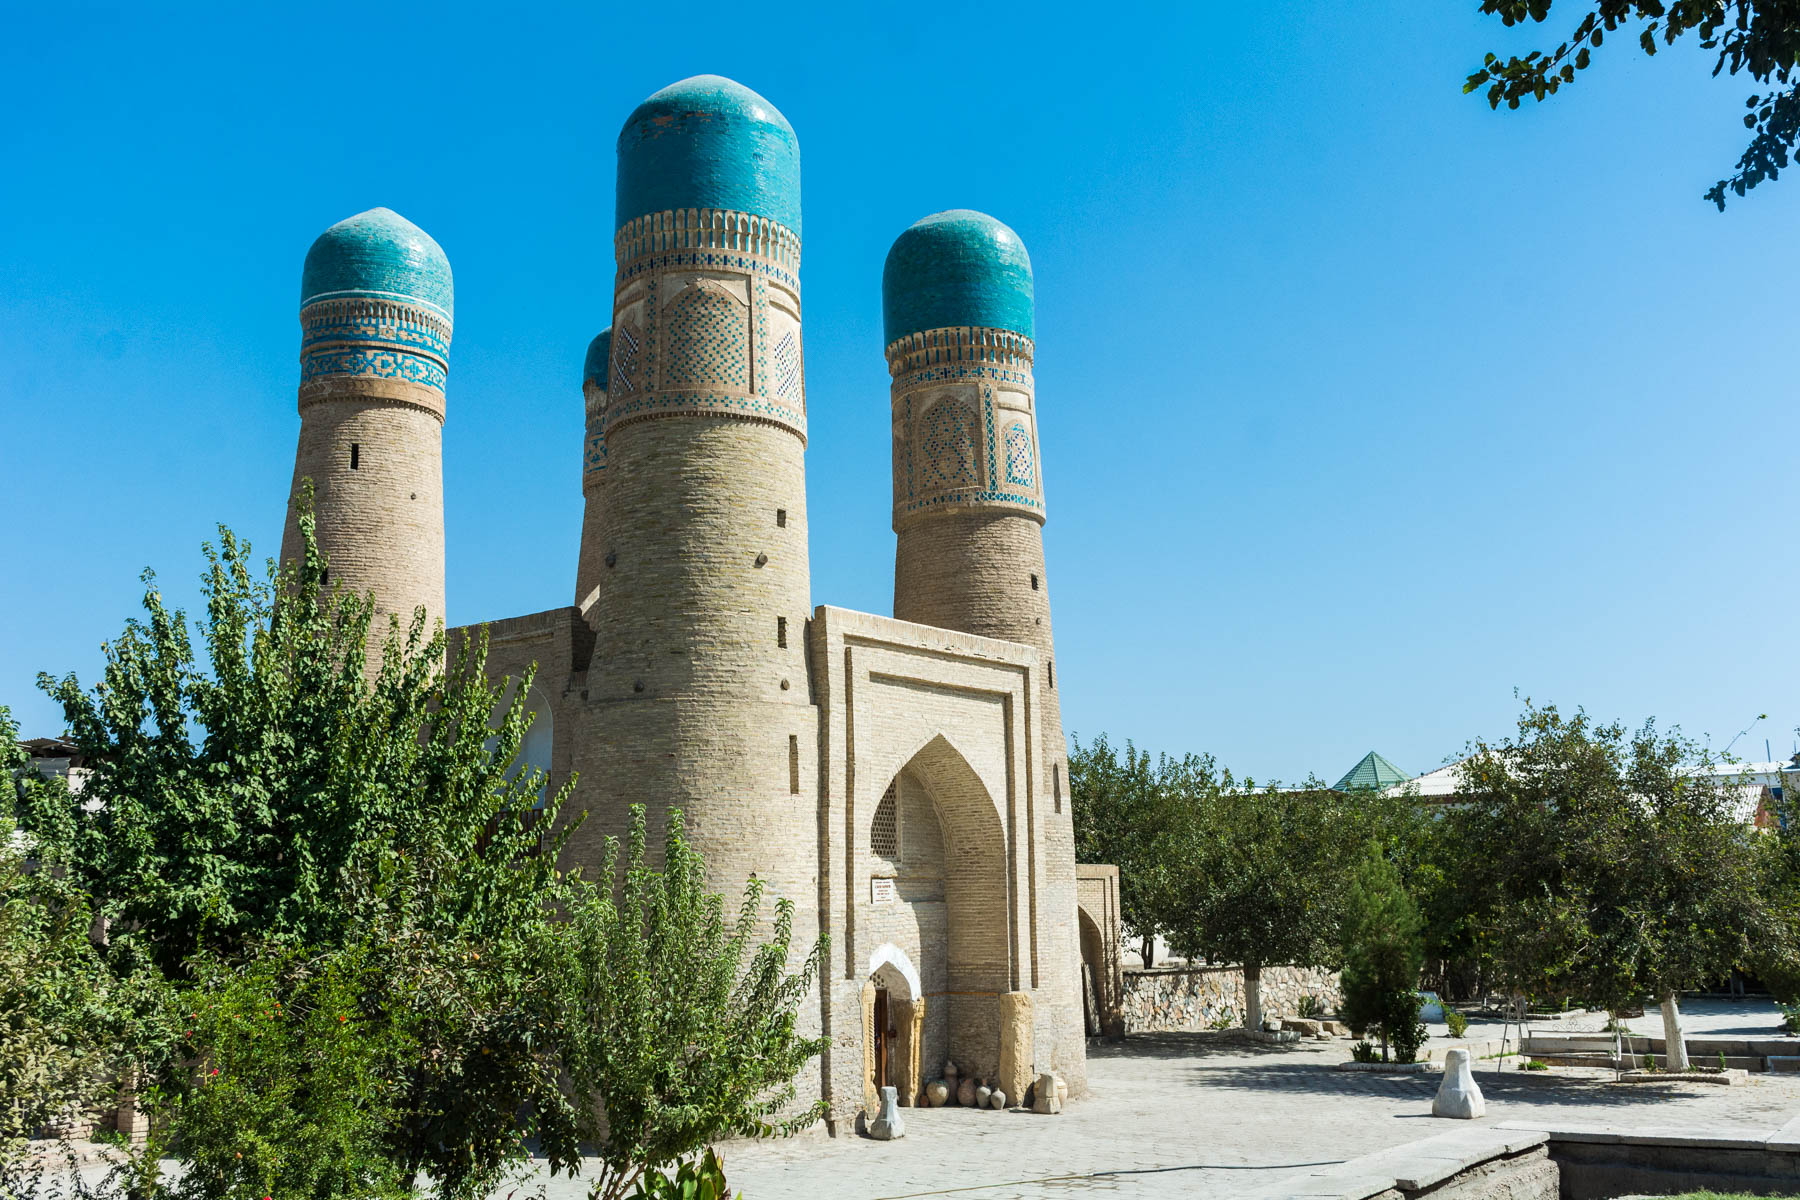 Two week Uzbekistan itinerary - The small Chor Minor mosque in Bukhara, Uzbekistan - Lost With Purpose